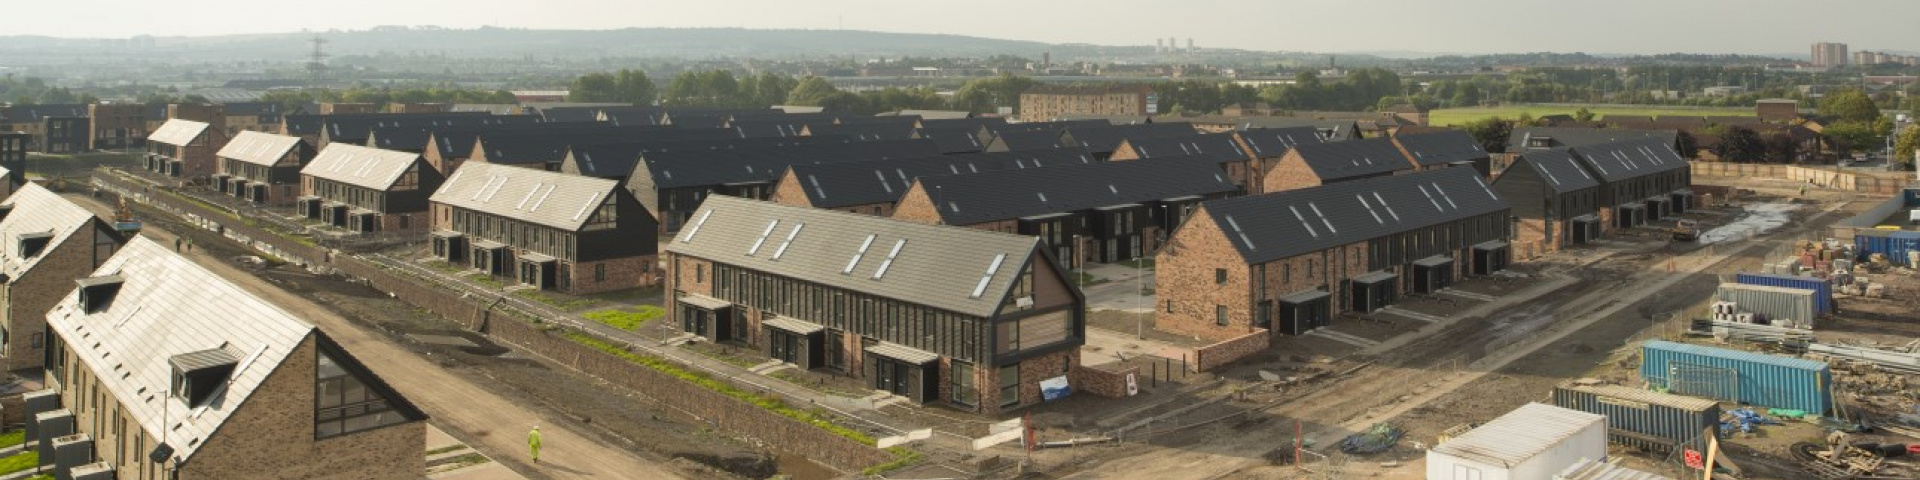 A new housing development being built. Image © Tom Manley.